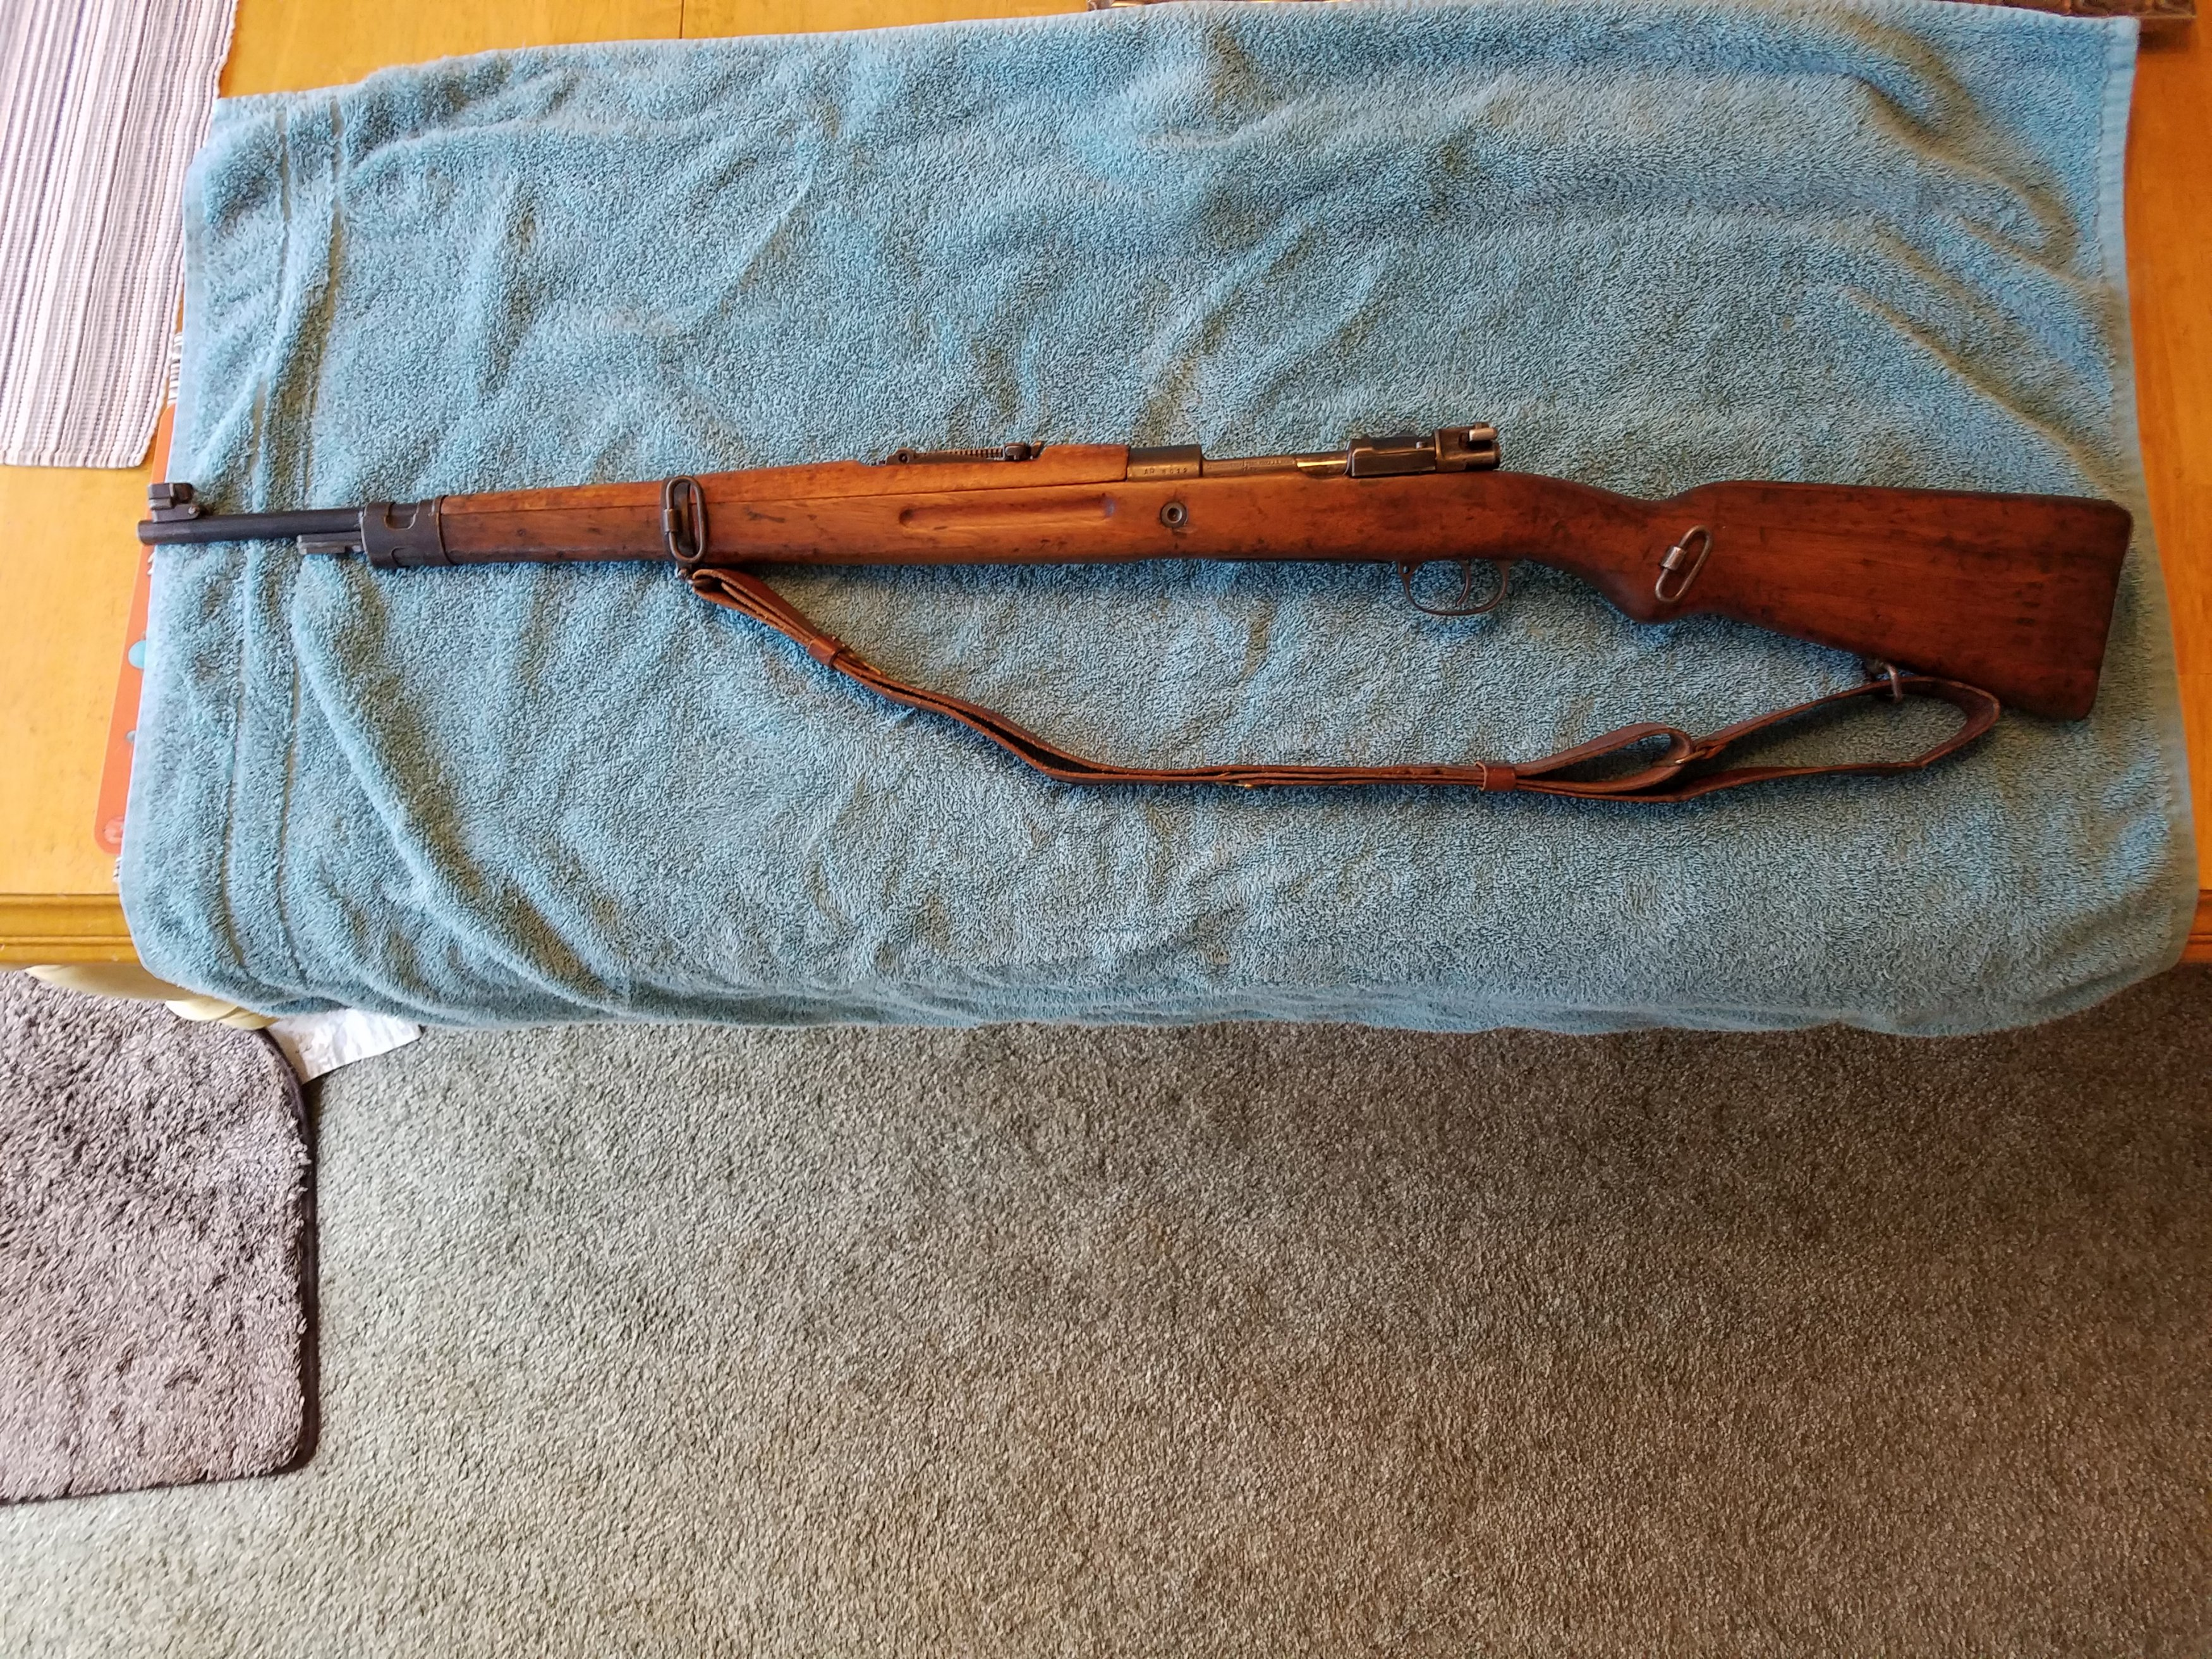 Mauser 8mm vz 24, looking to learn more about gun's history